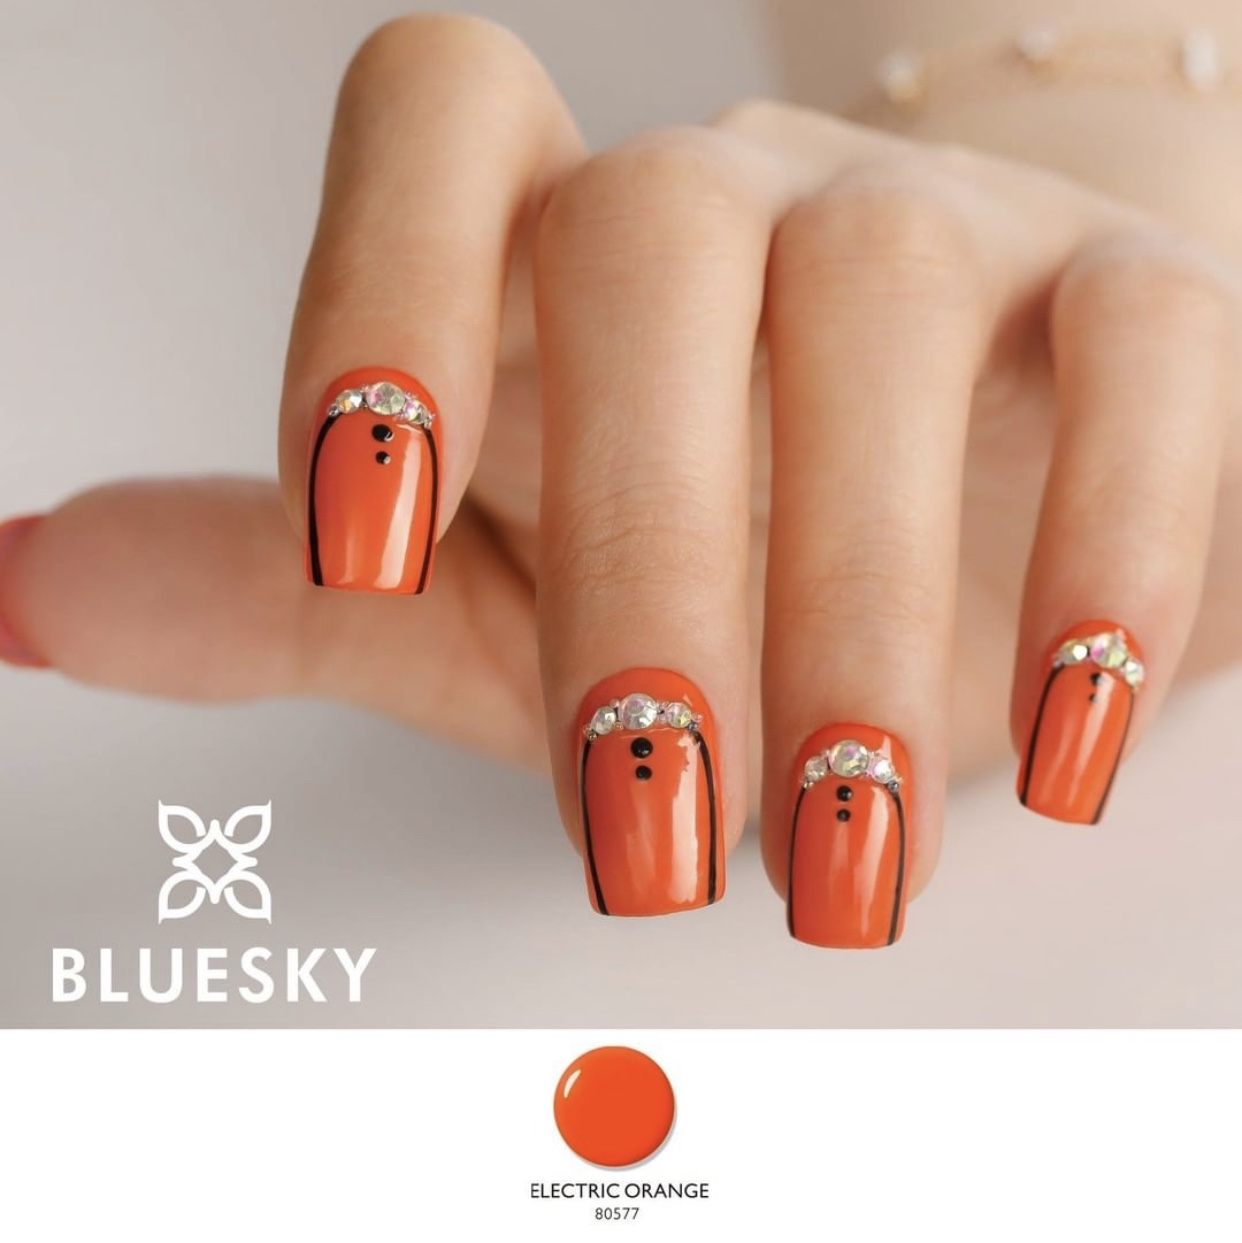 Bluesky Offers More than 1,000 Colors of Gel Polish